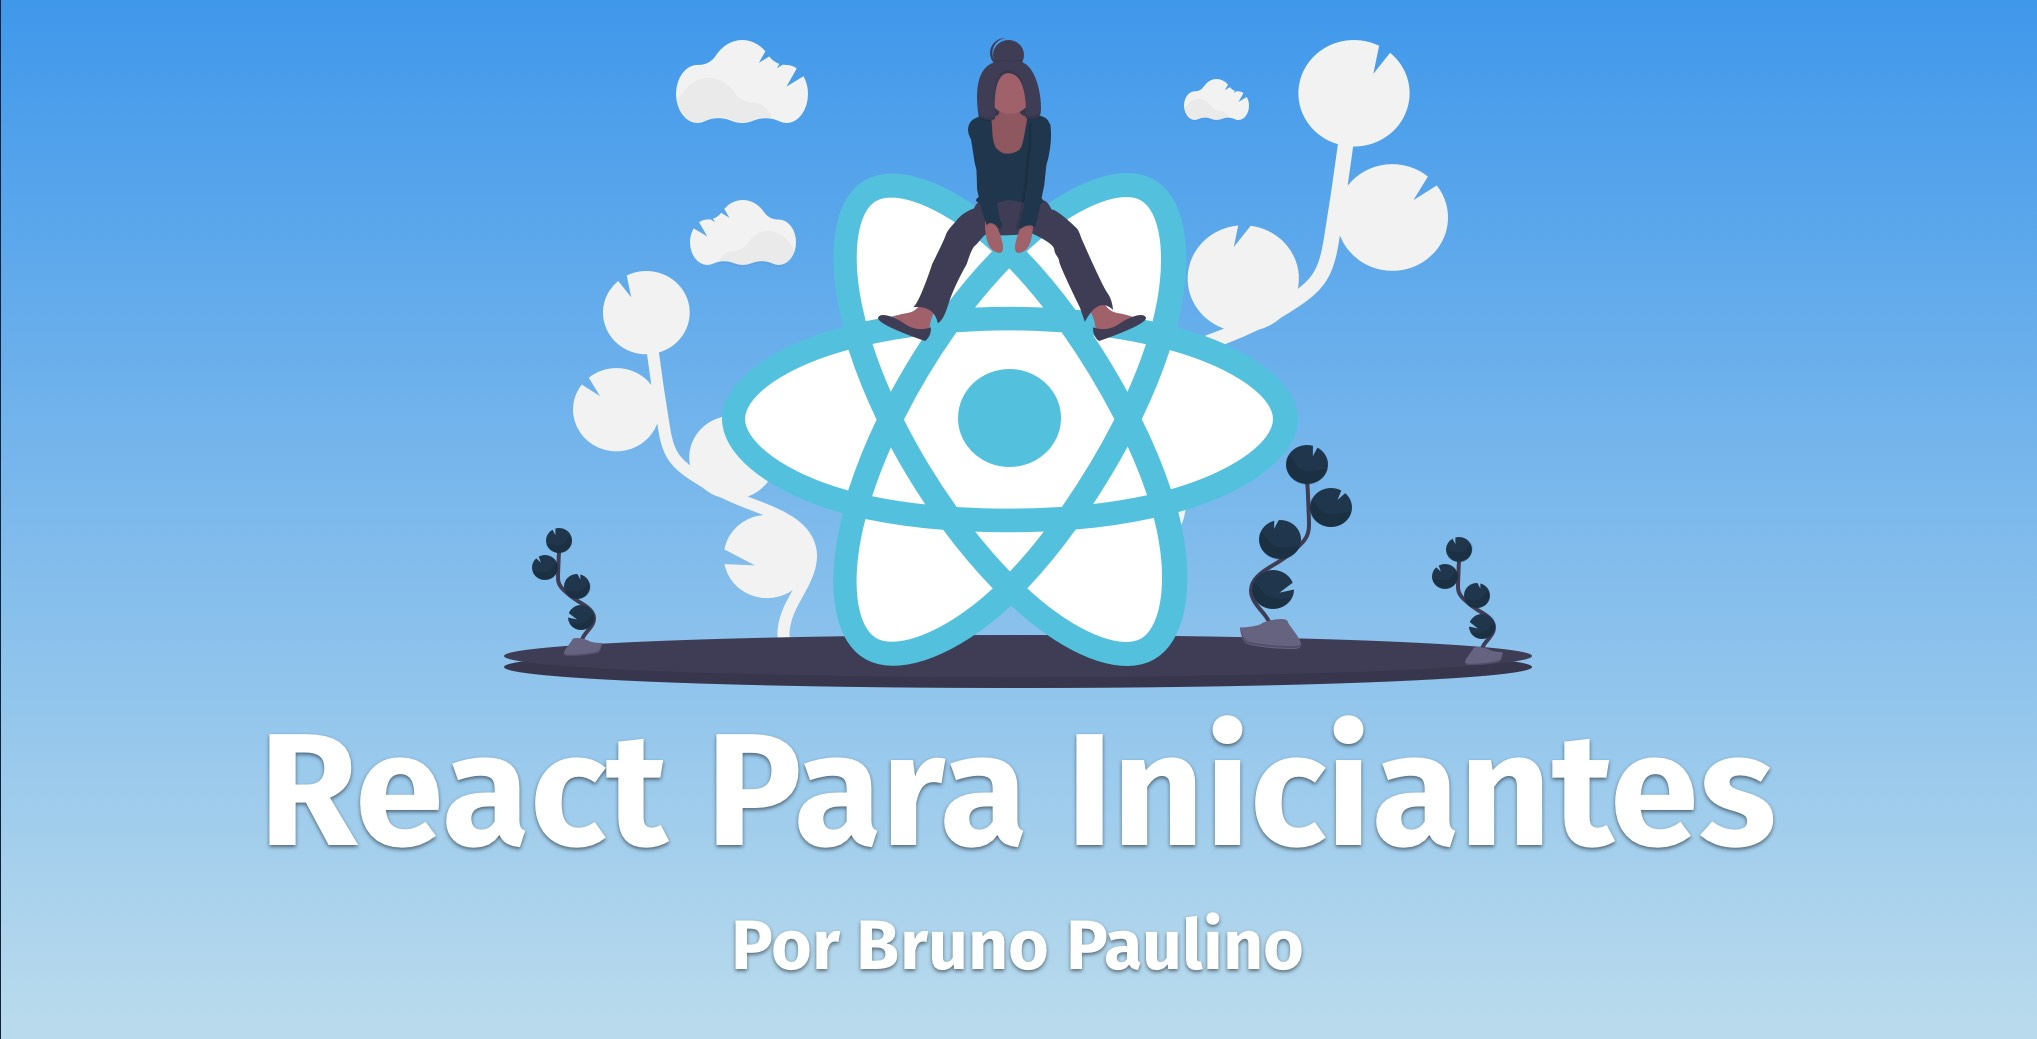 Capa do curso React para Iniciantes com o Logo do React